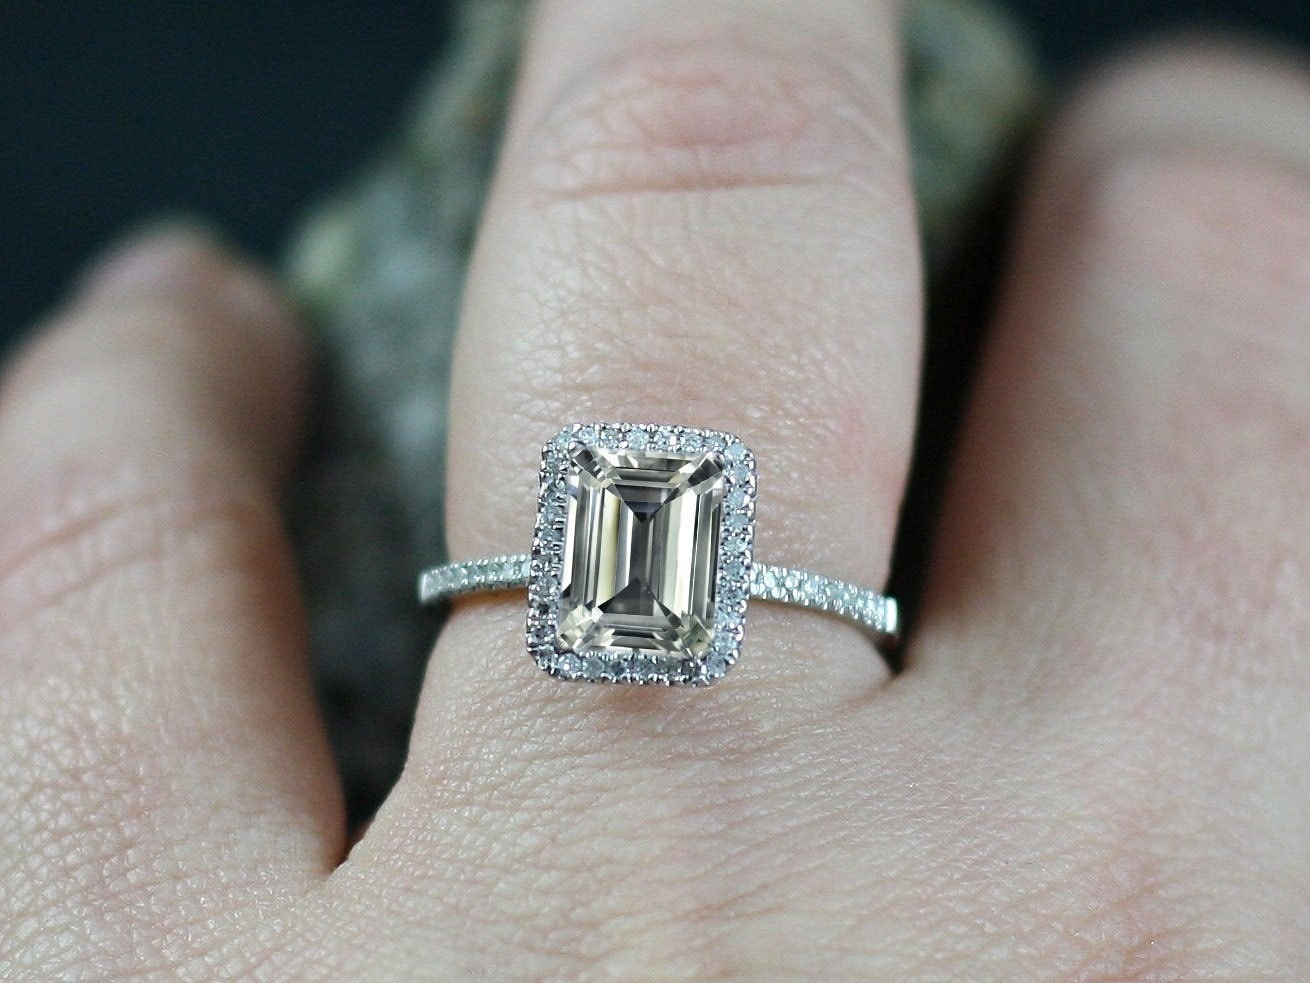 Goshenite Engagement Ring White Emerald cut & Diamonds Halo